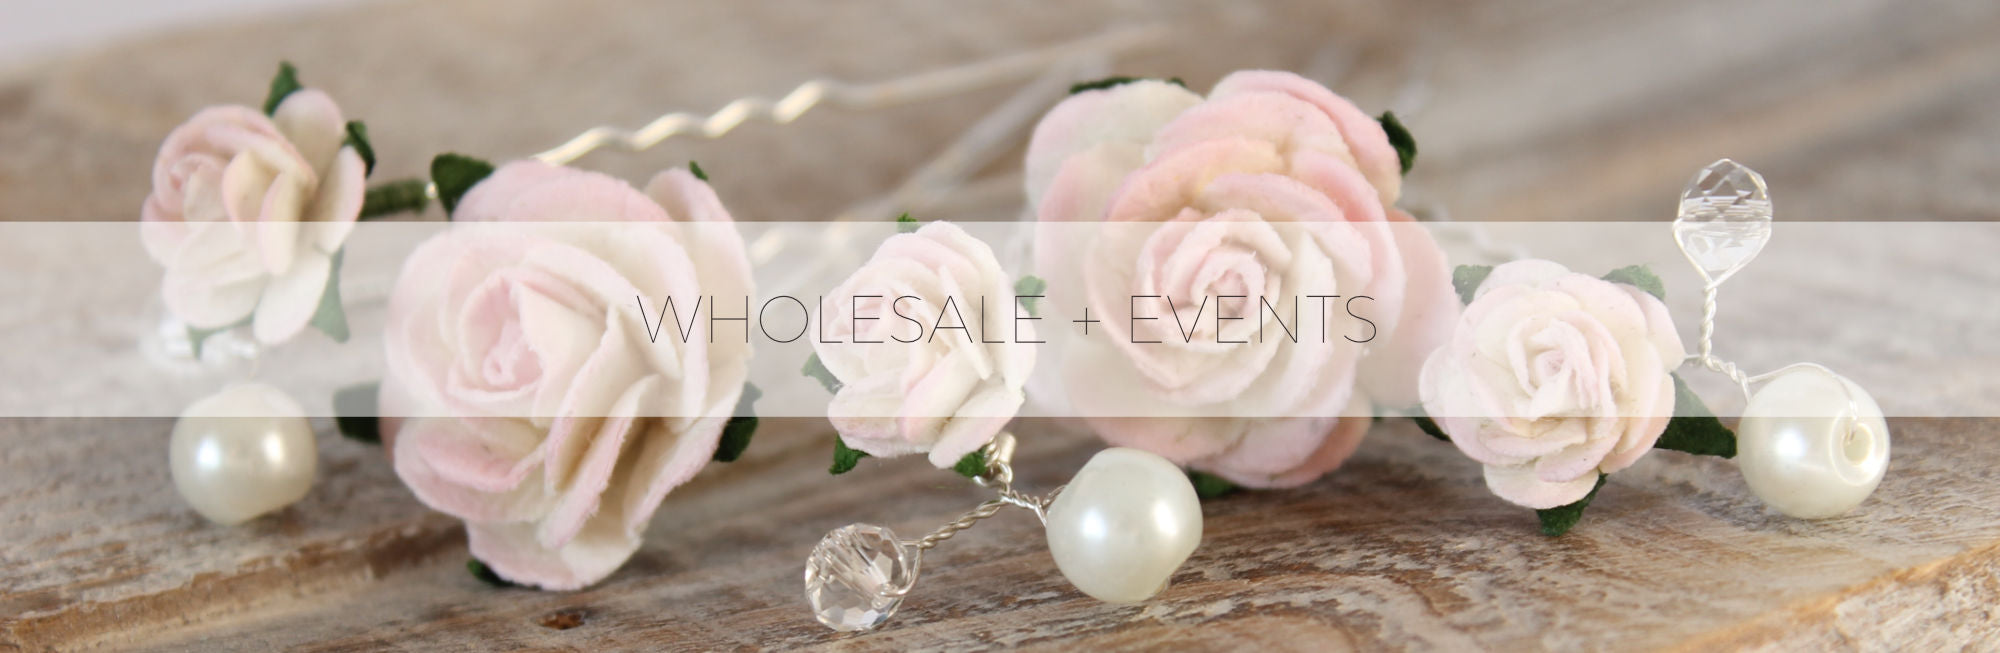 floral design wholesale and events